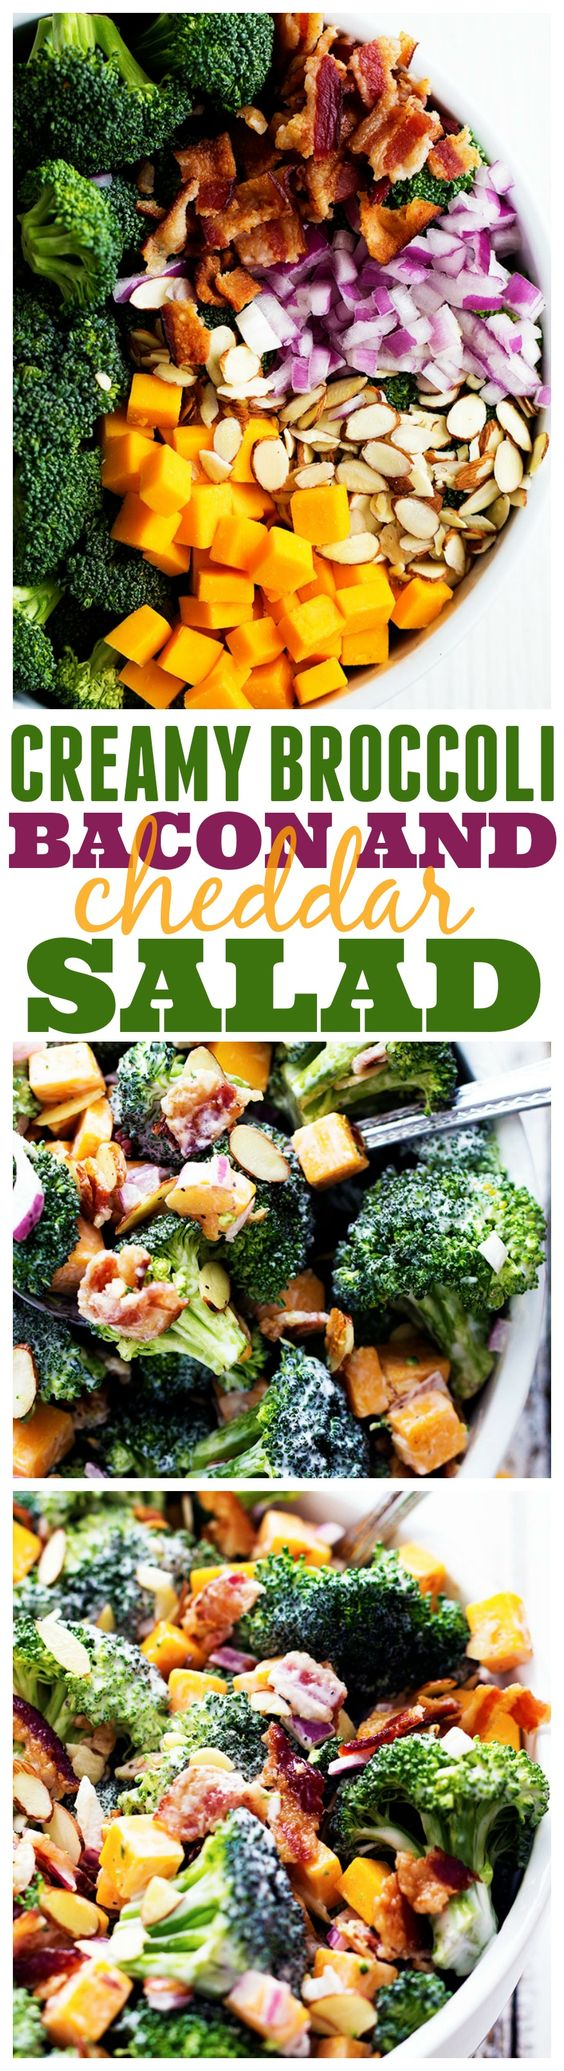 Broccoli Salad you will make! Perfect with the added bacon, cheddar ...